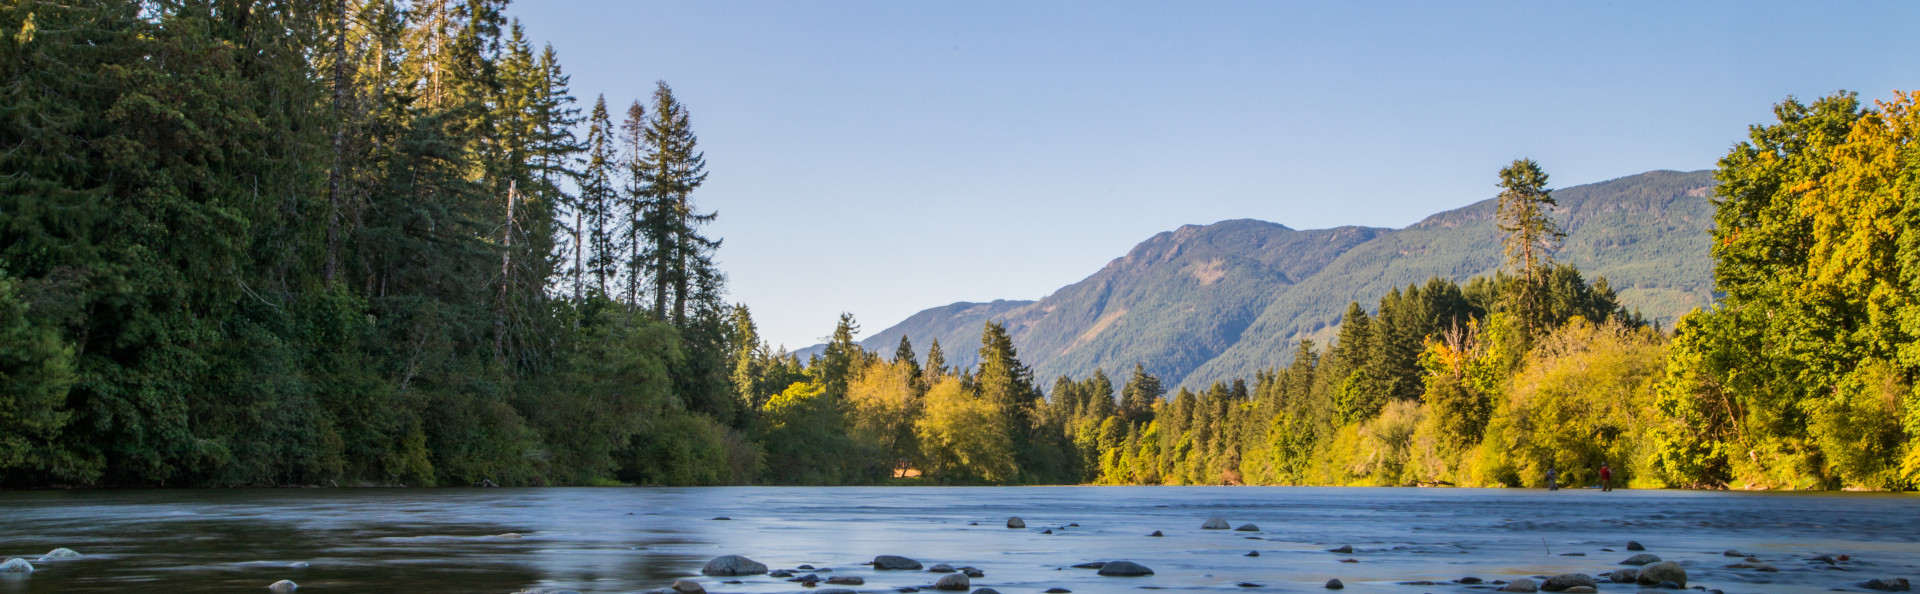 Gulf-Islands-School-District-River-Trees-Mountains